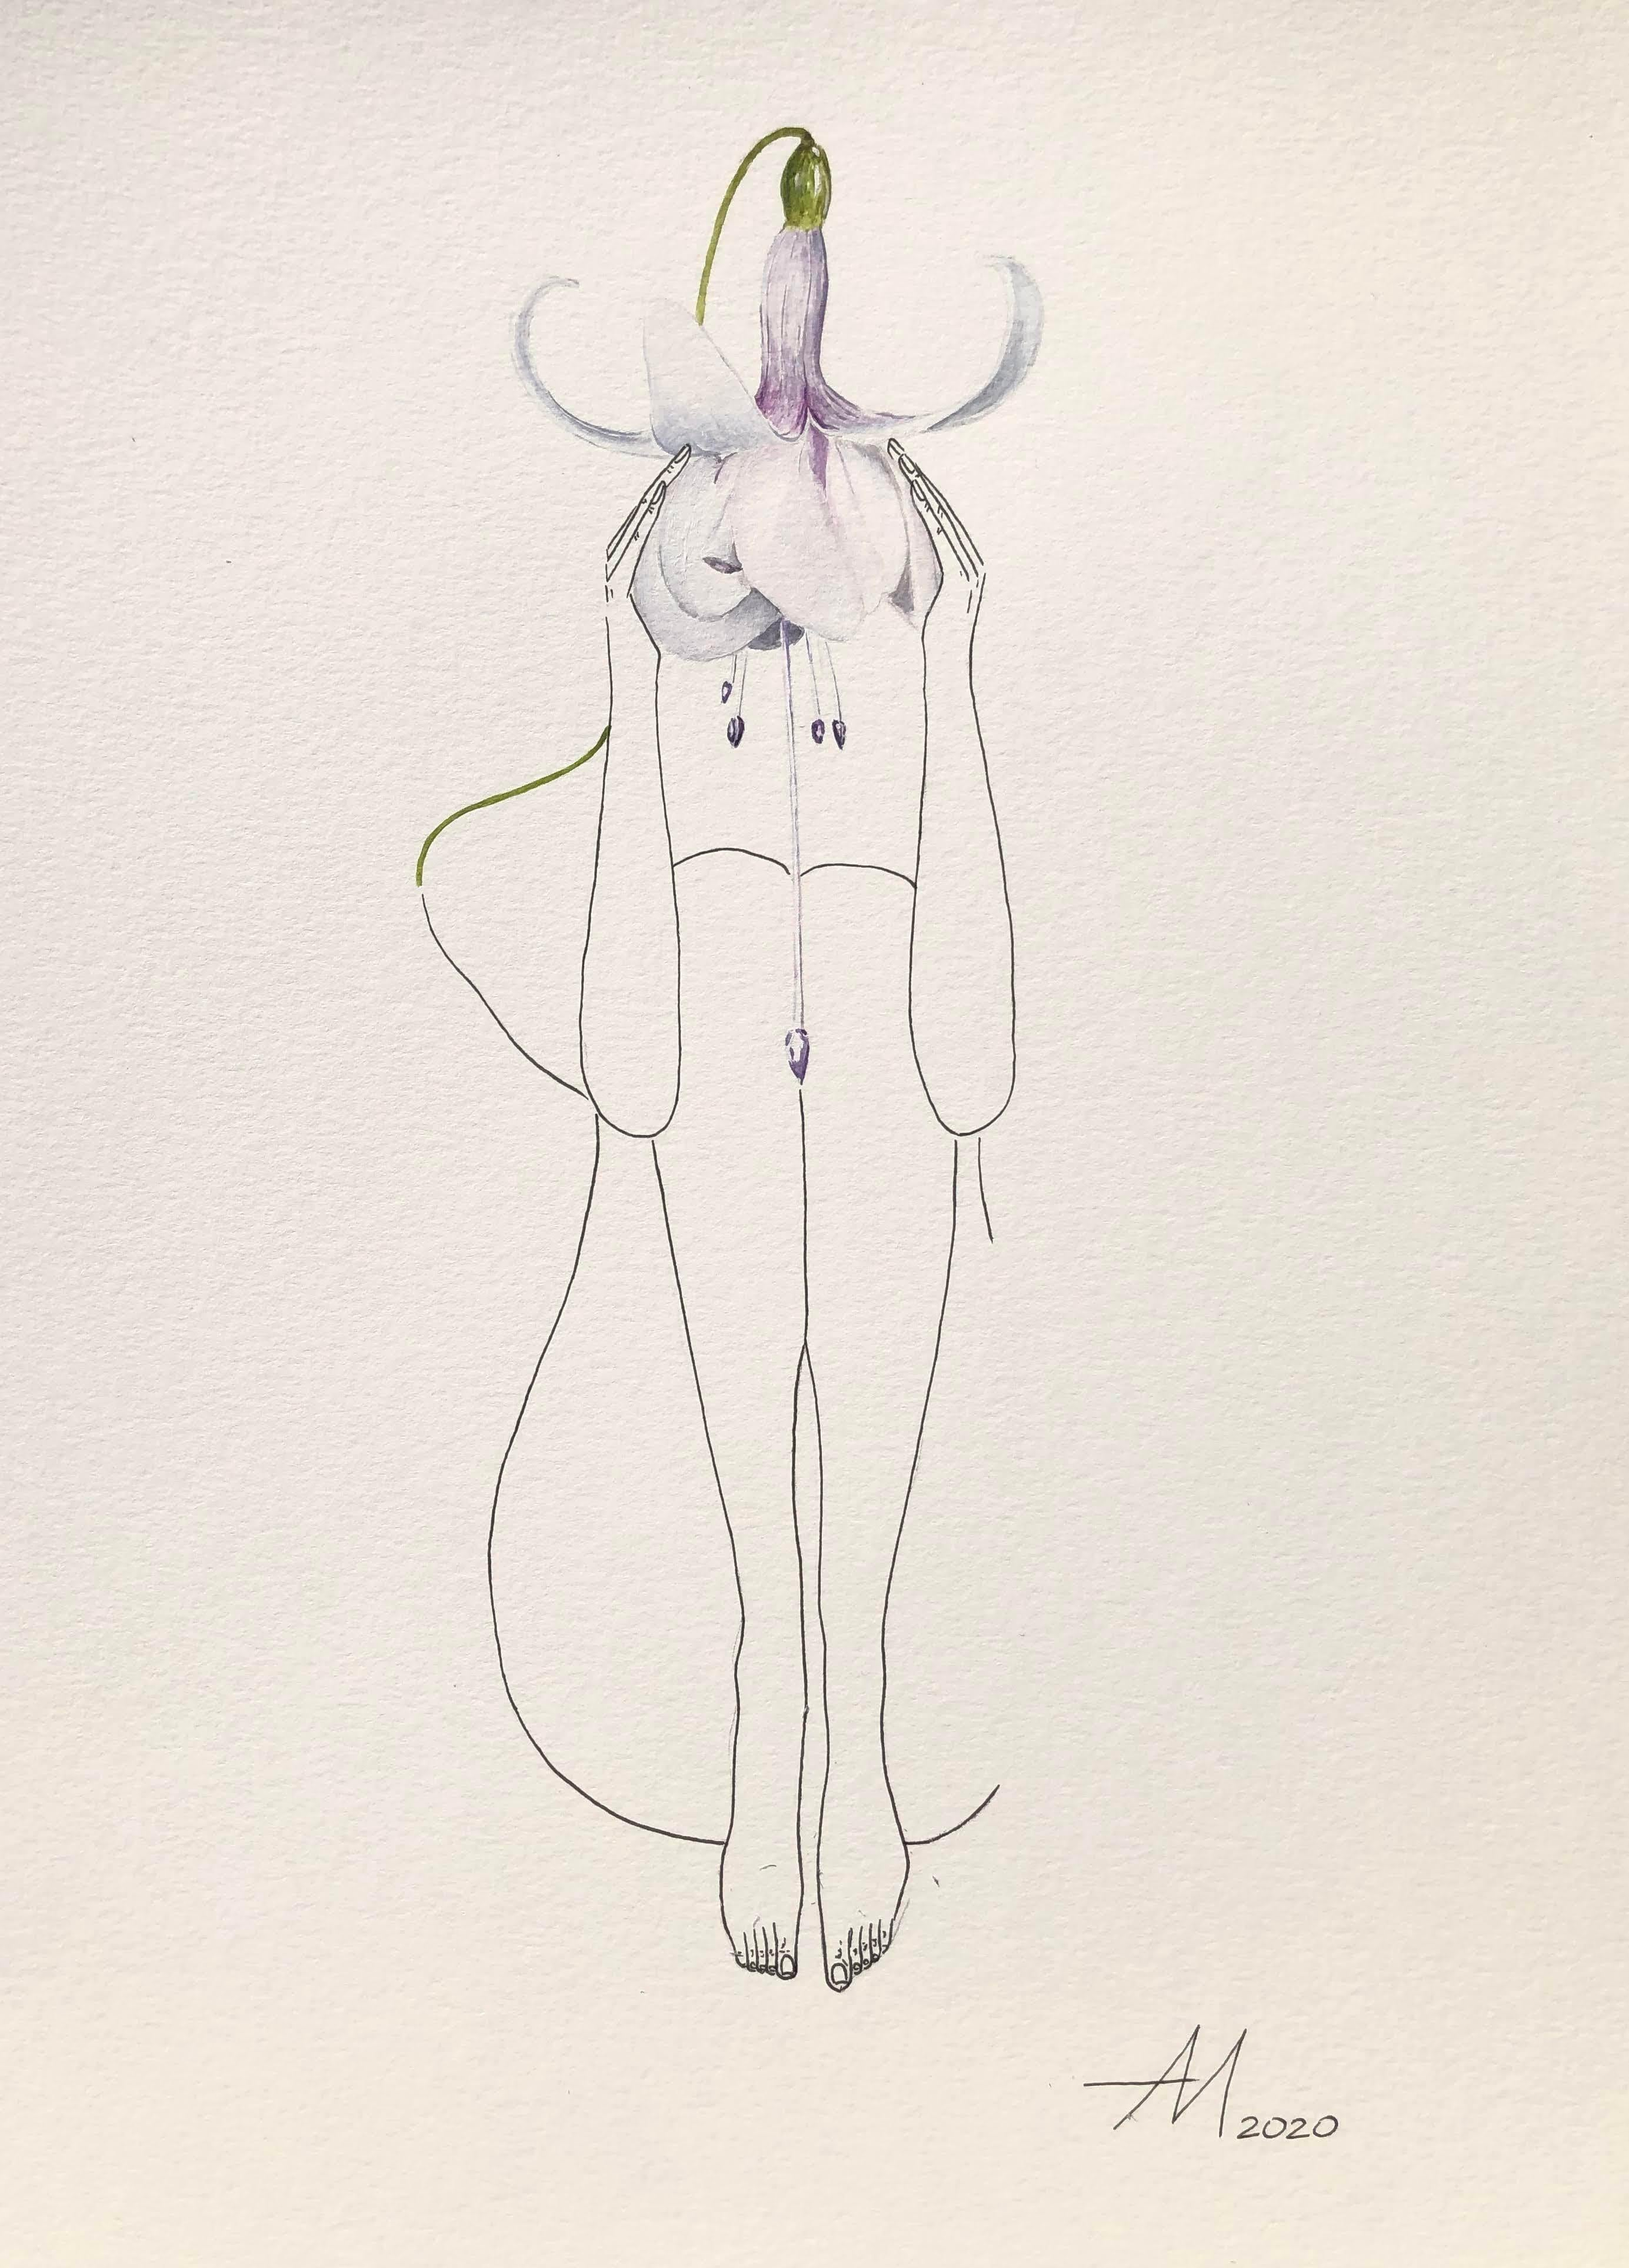 White Fuchsia (flower) - line drawing woman figure with white, purple flower